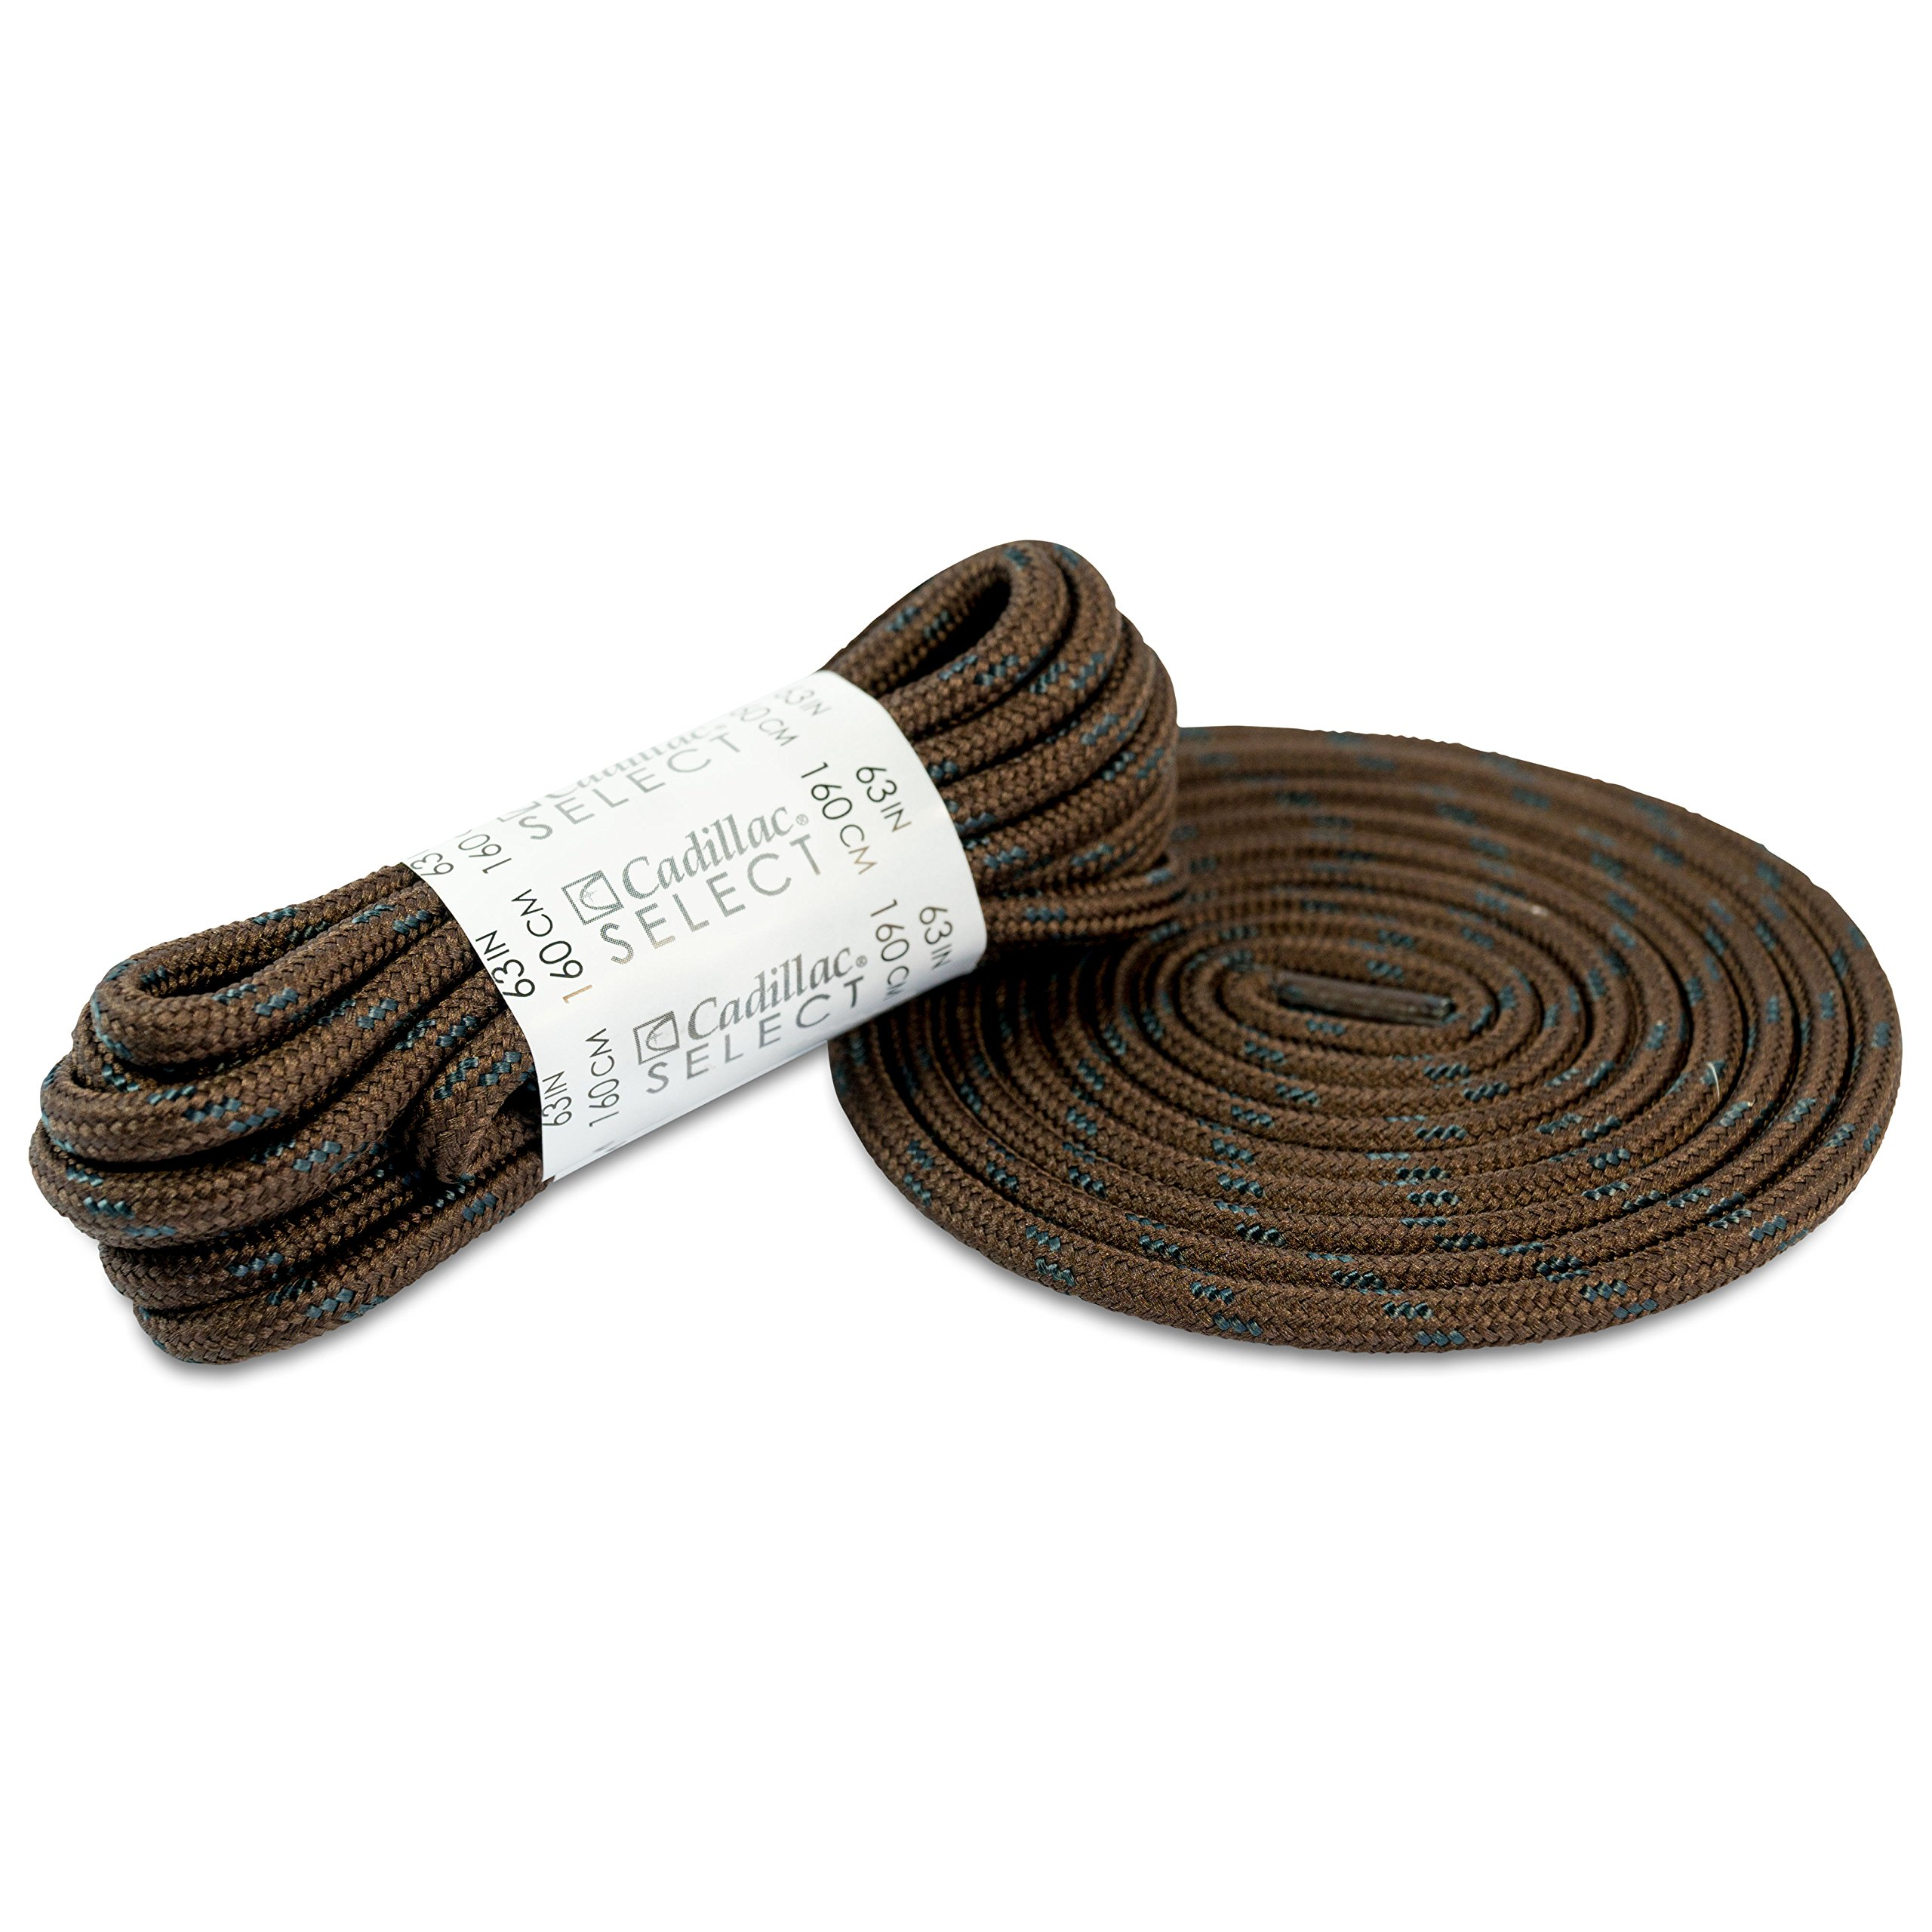 """Cadillac Select Kevlar Boot Laces 3/16"""" Thick - Black & Brown Laces - 3 Pairs - Shoelaces for Boots"""